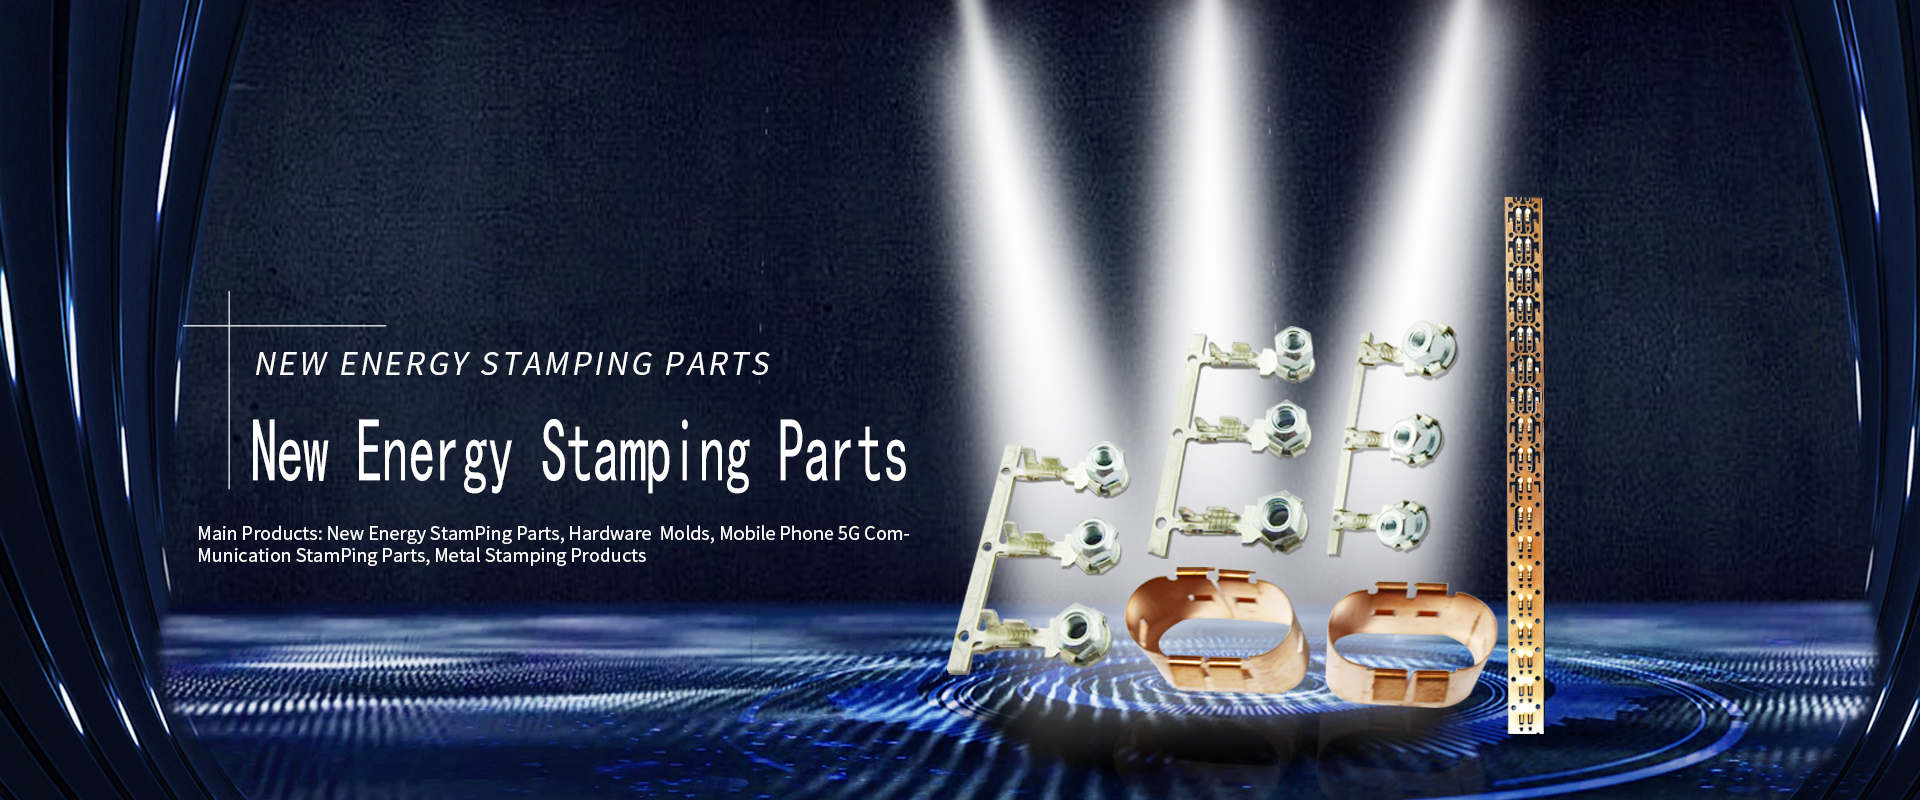 Precision stamping parts, new energy stamping parts, metal stamping dies